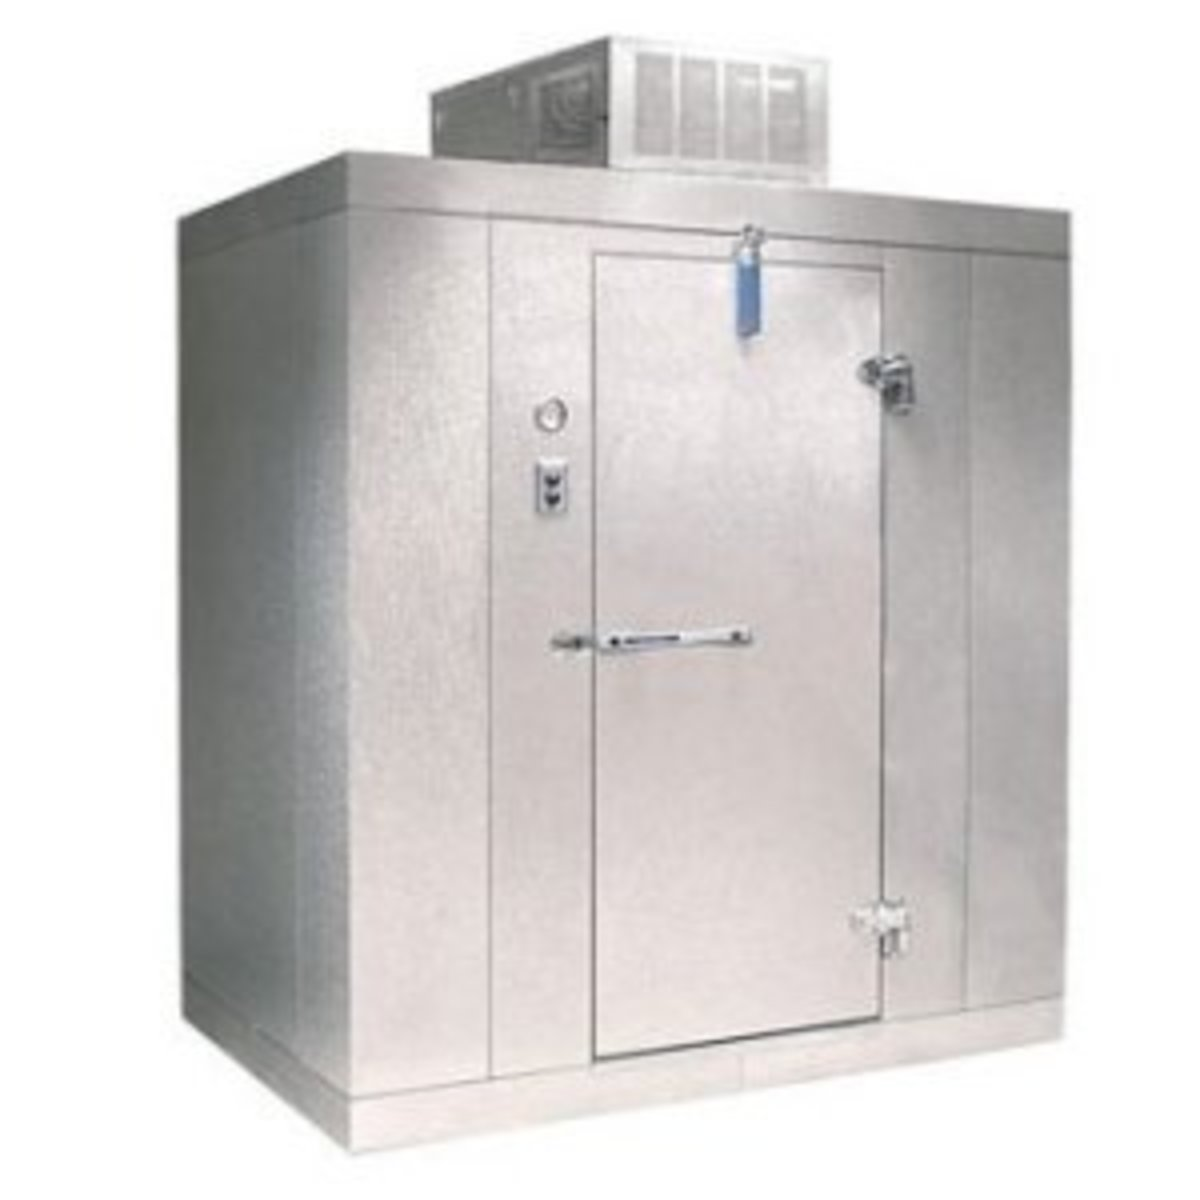 A walk-in meat cooler or meat safe.